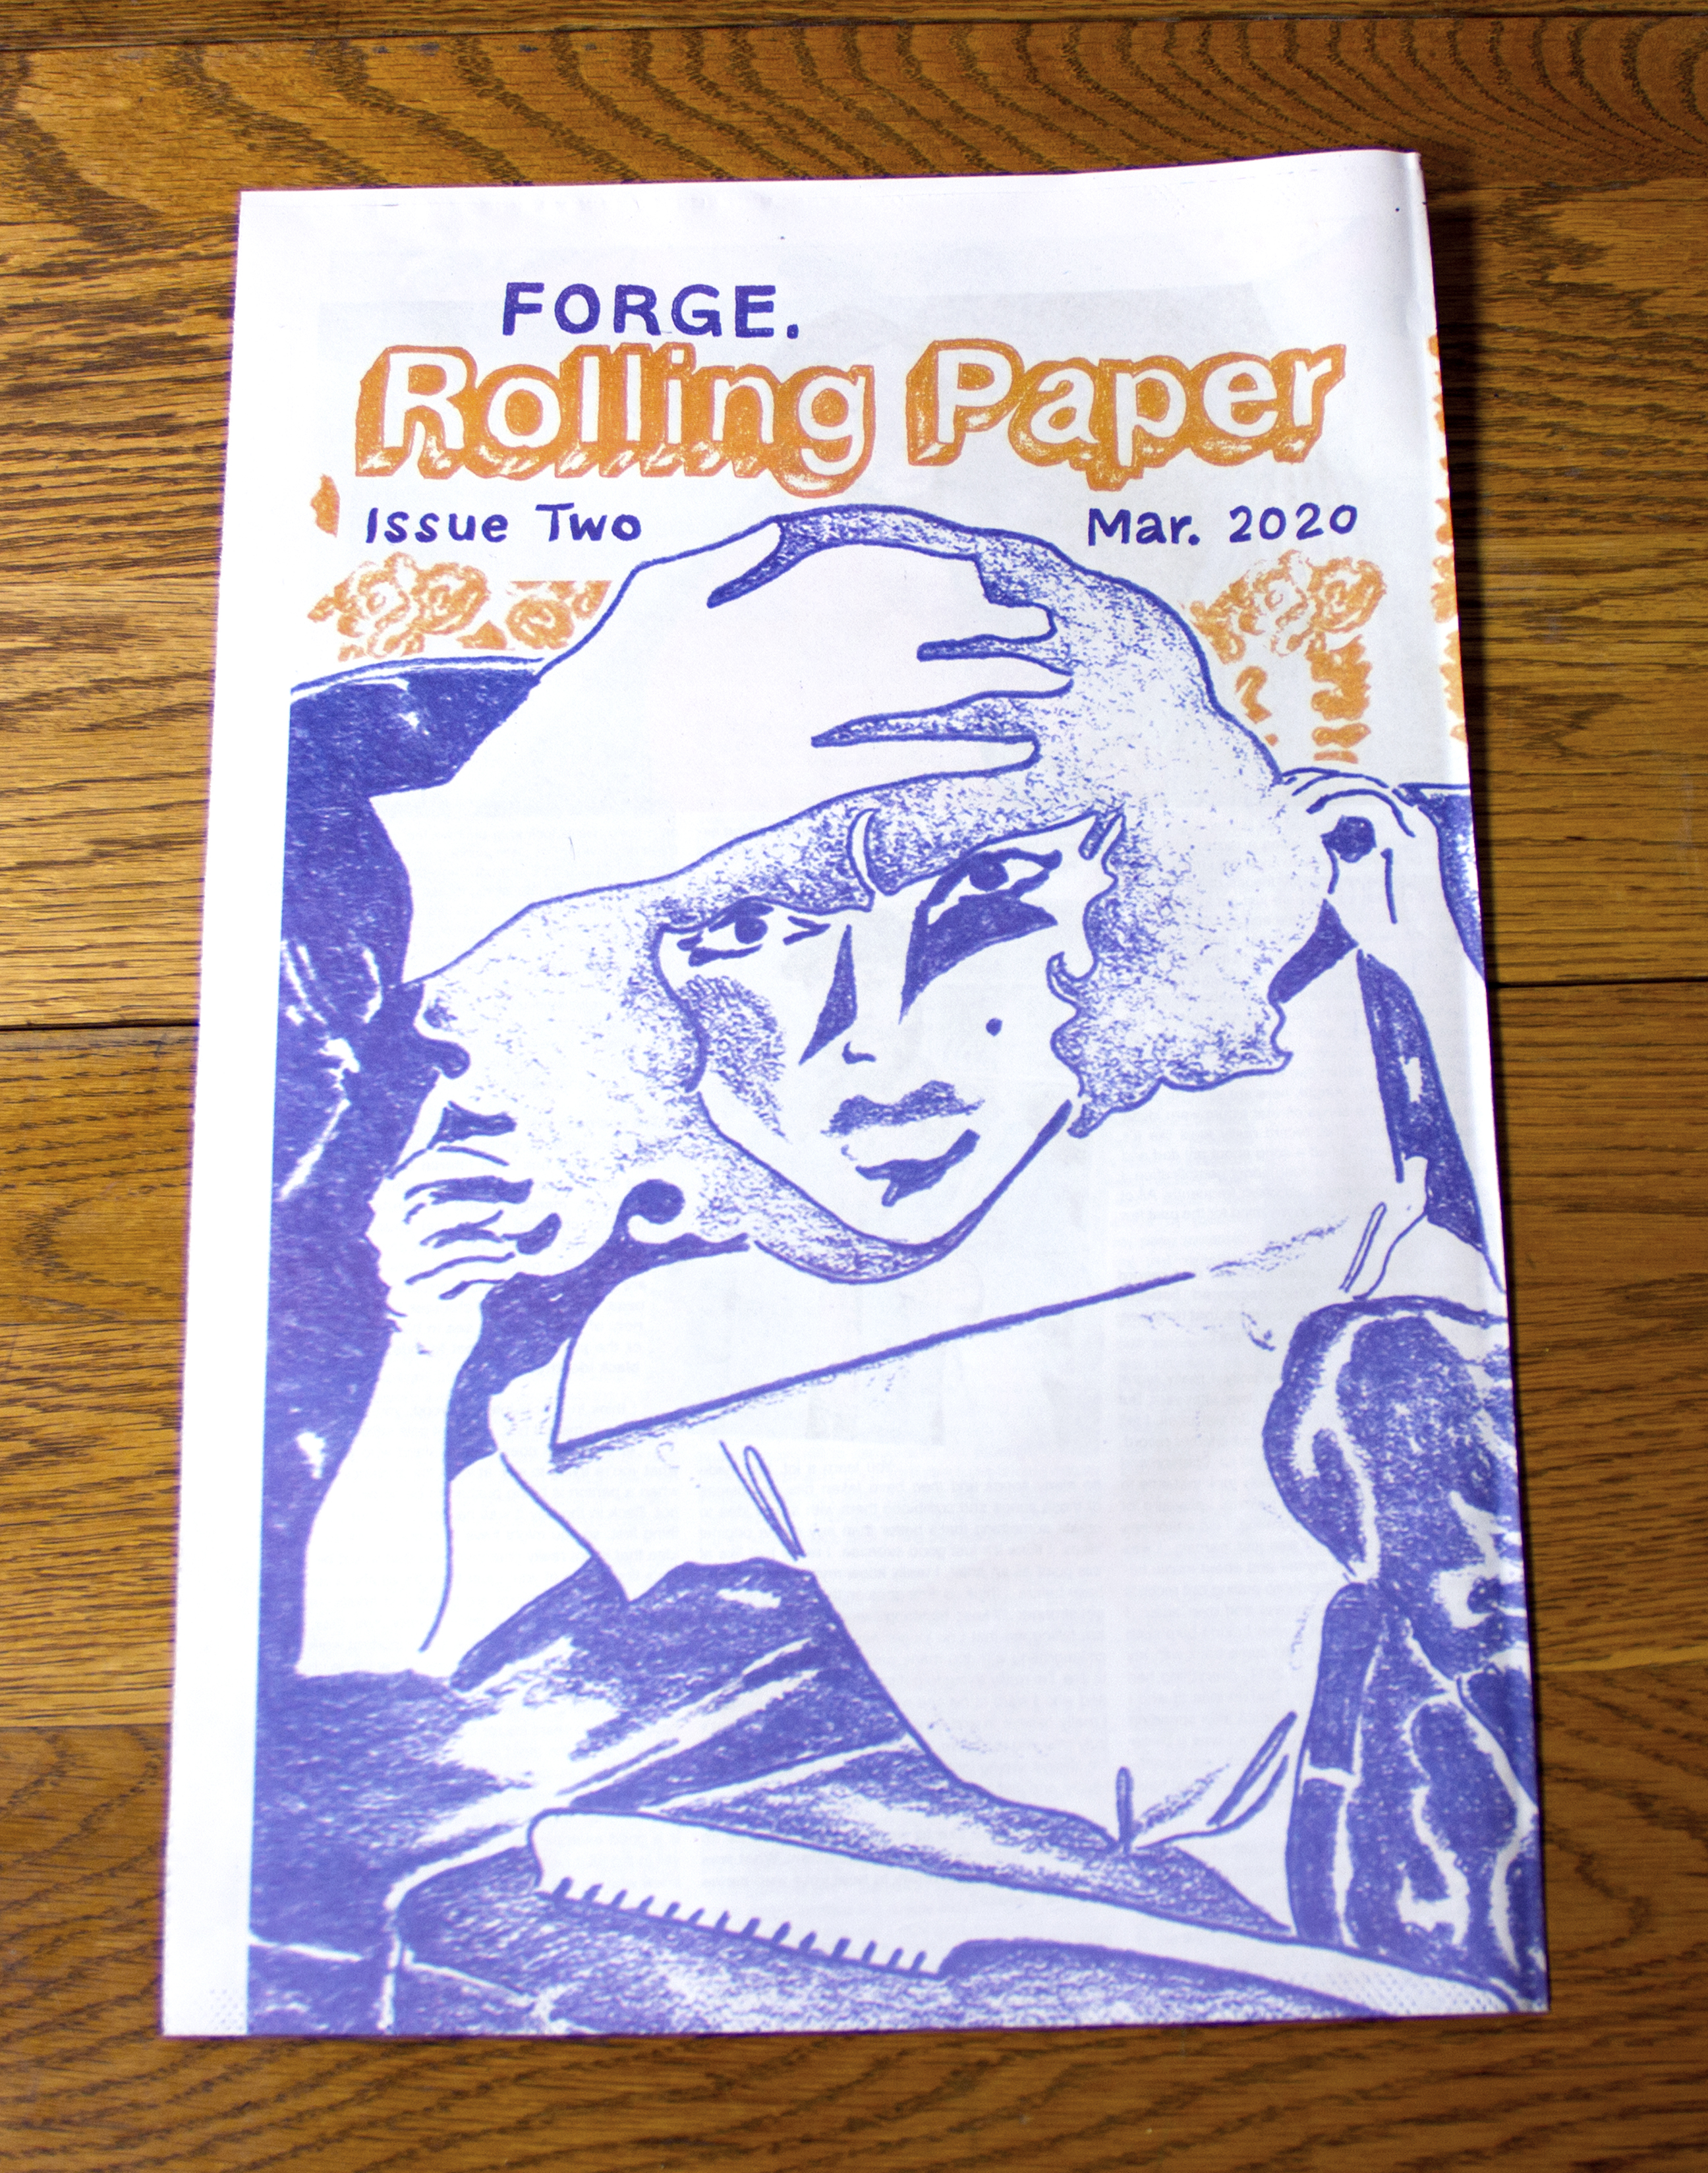 FORGE Rolling Paper Issue Two (Two Copies)